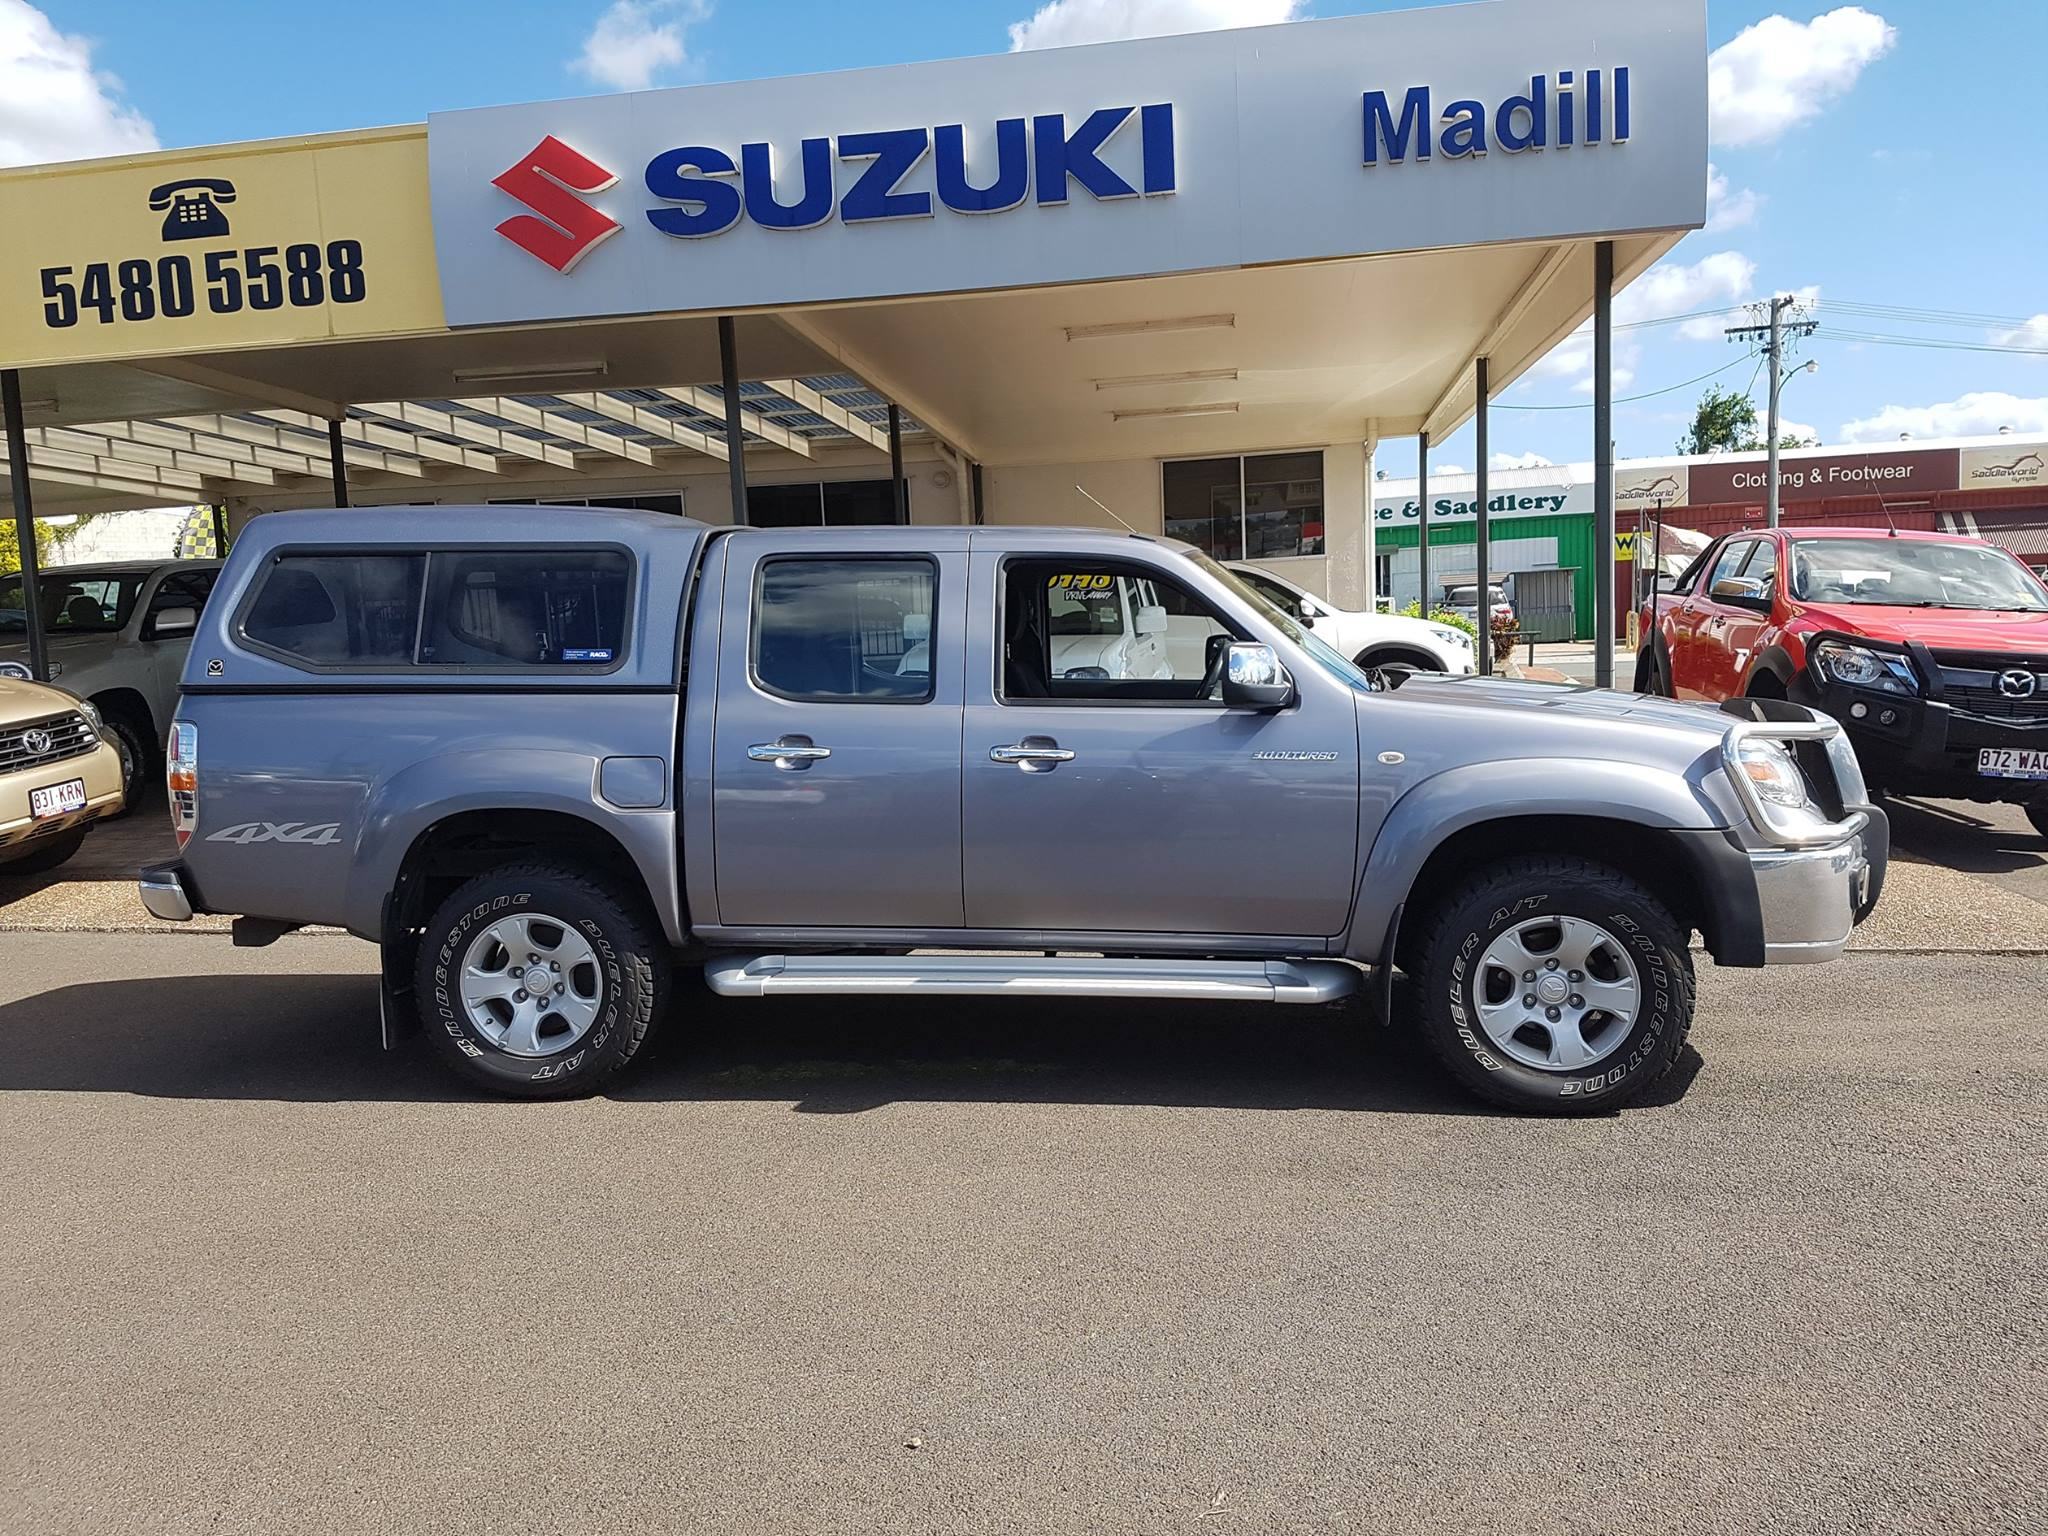 Madill Used Cars - Used Cars - 2 Lionel Donovan Dr - Noosaville